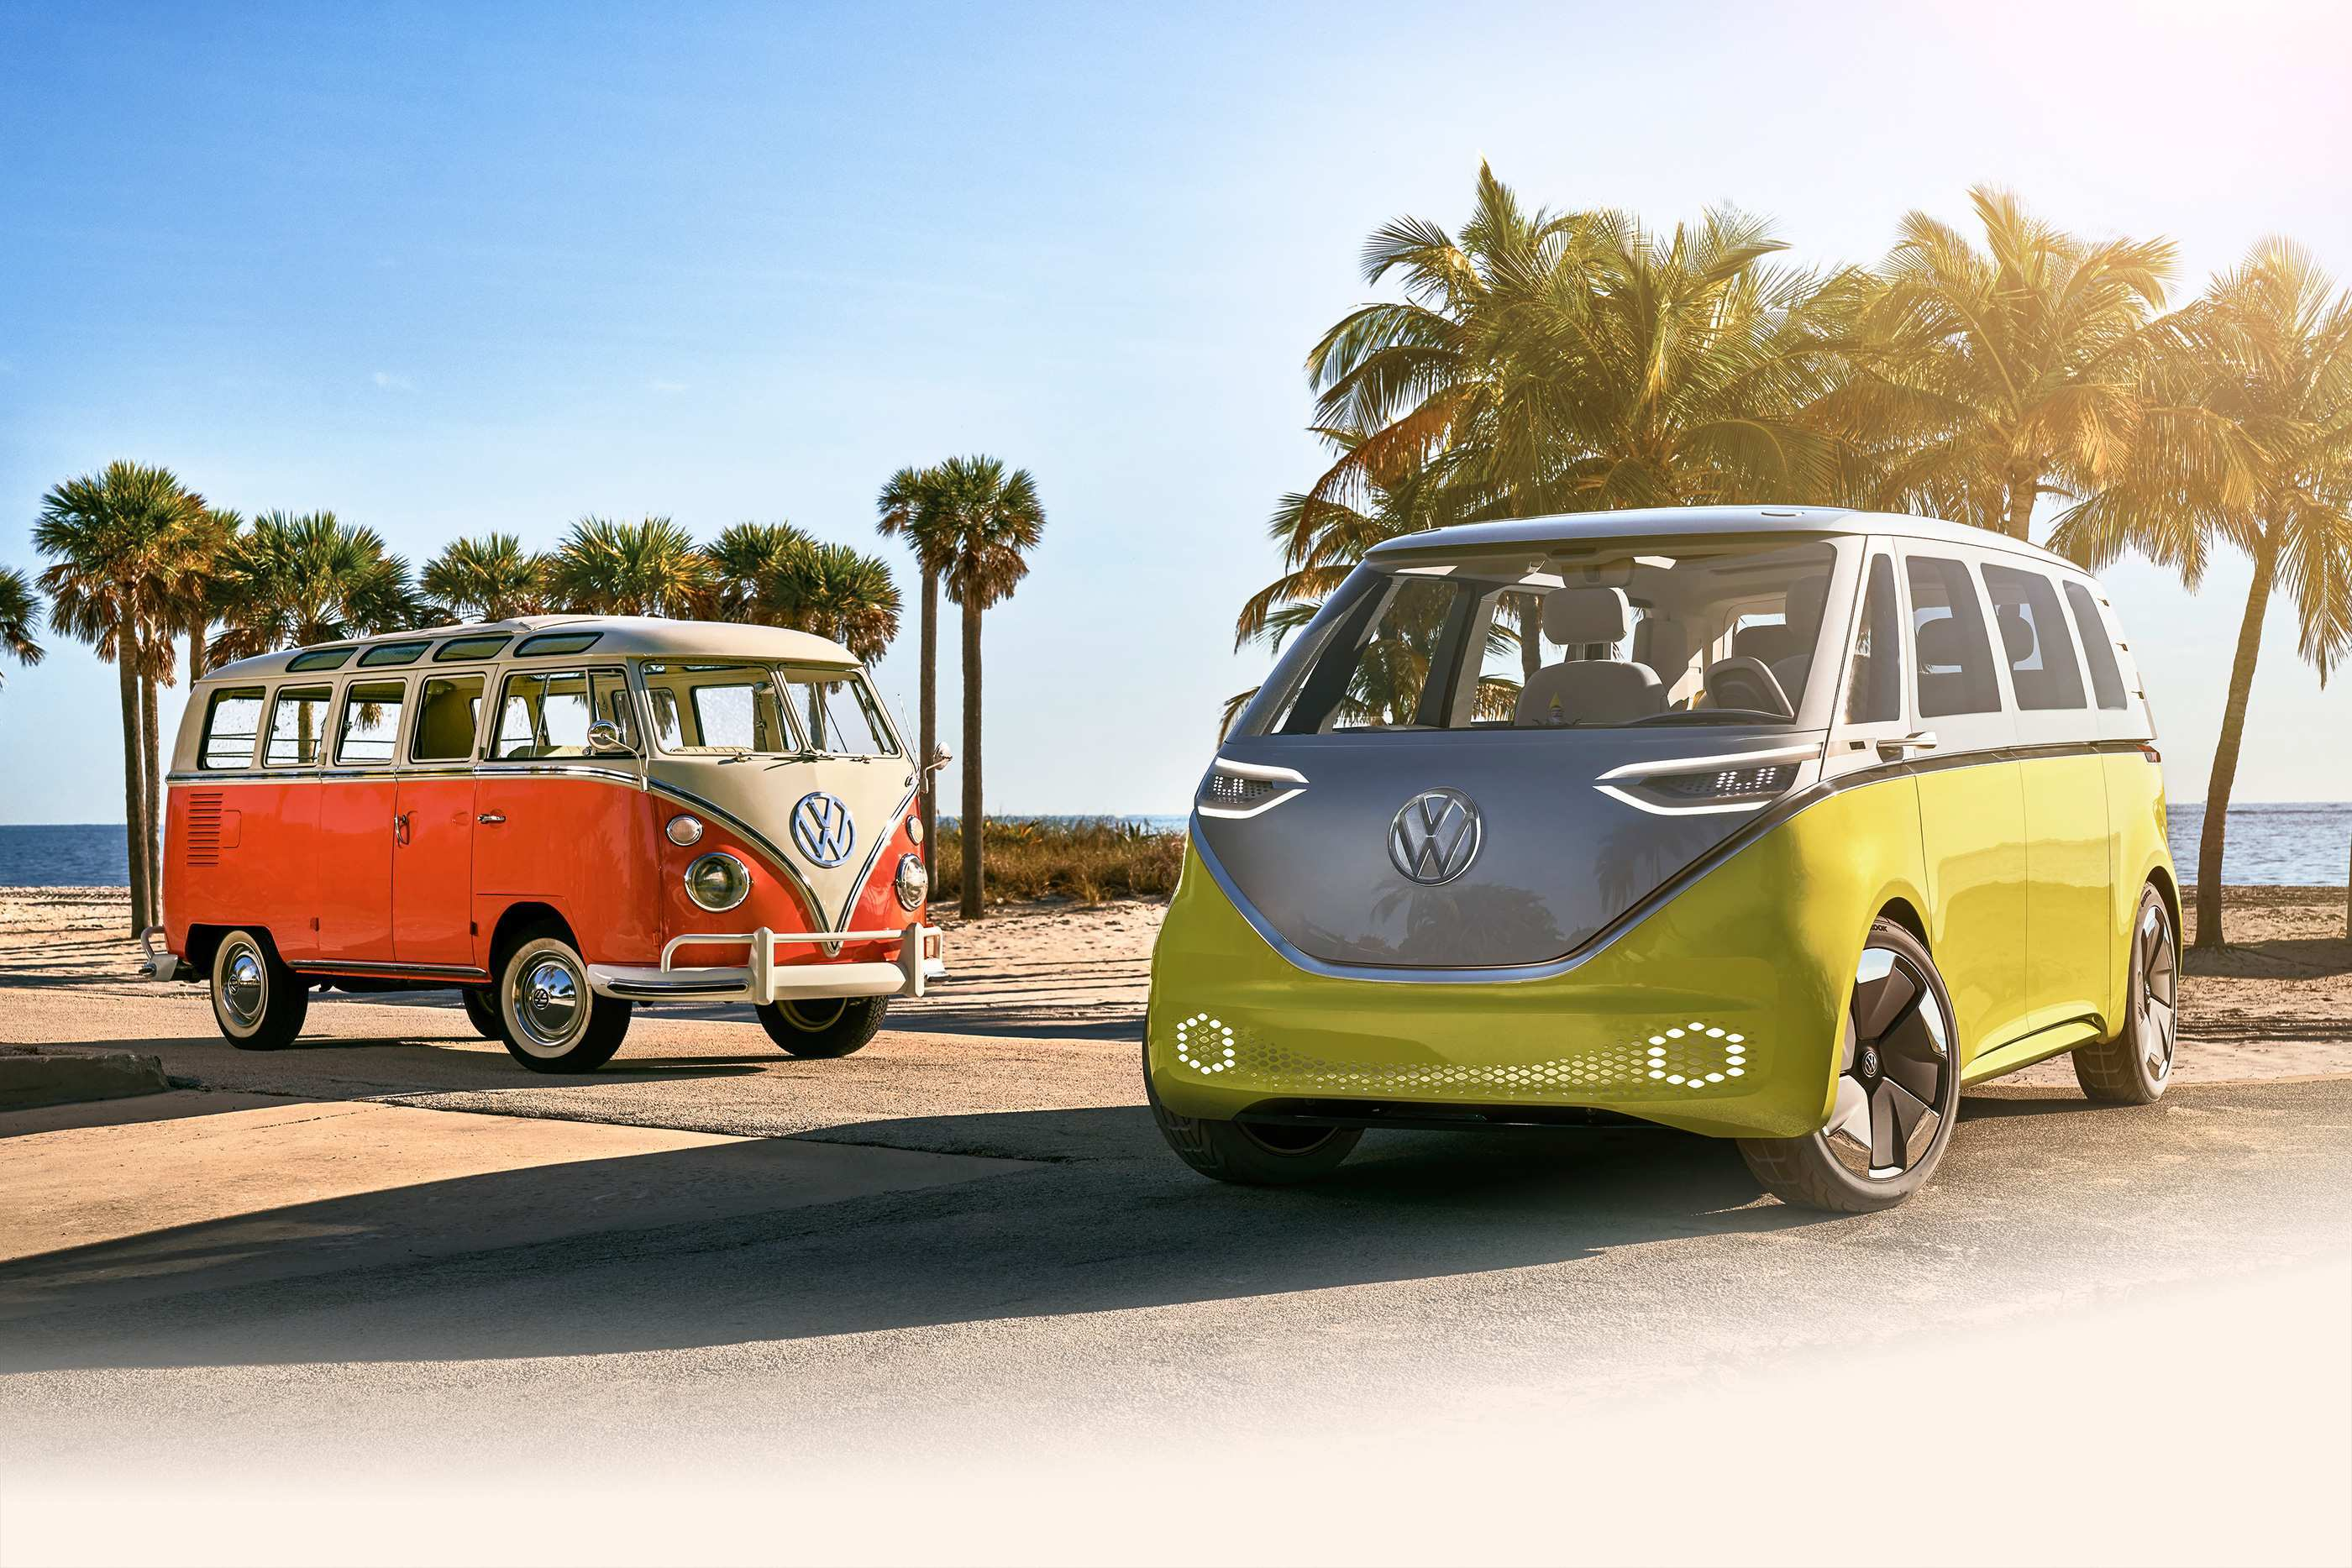 39 New Volkswagen Bus 2020 Price Specs And Review